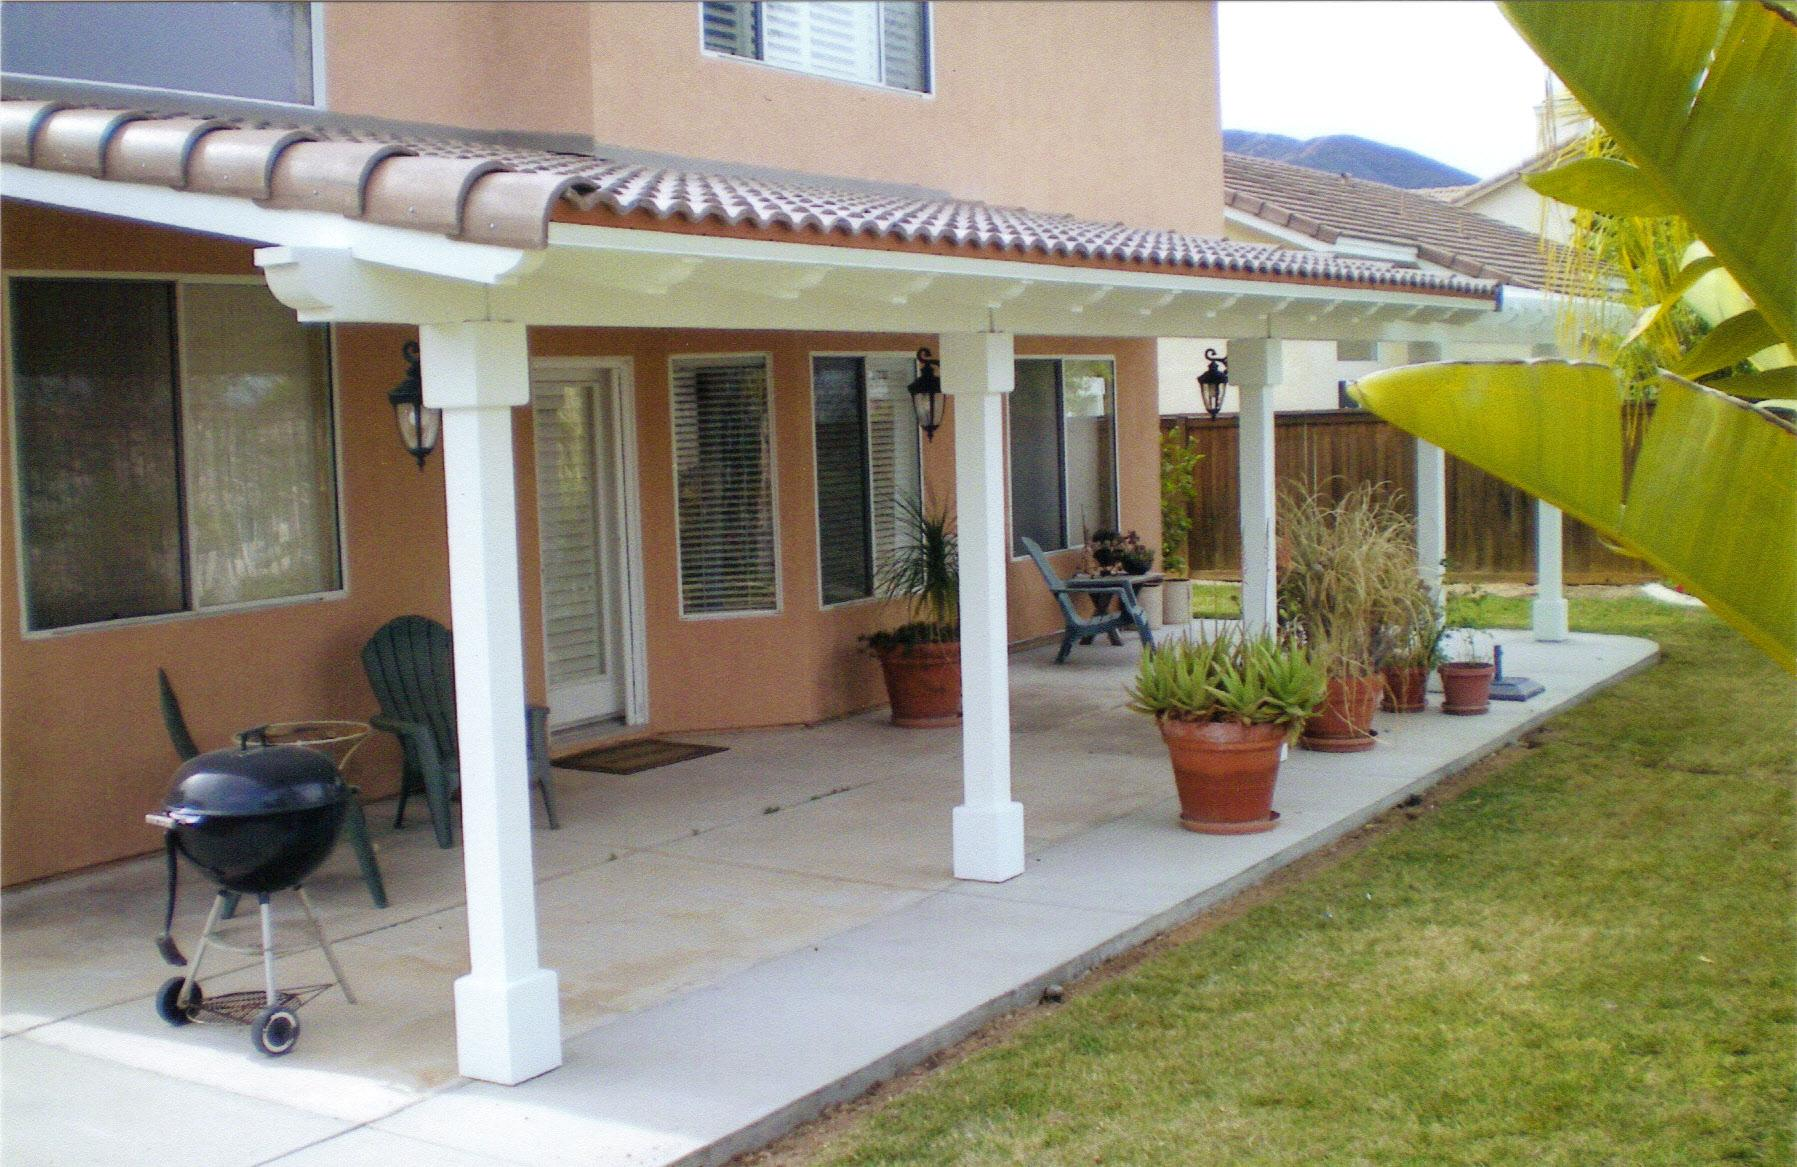 Wooden Patio Covers Design | HomesFeed